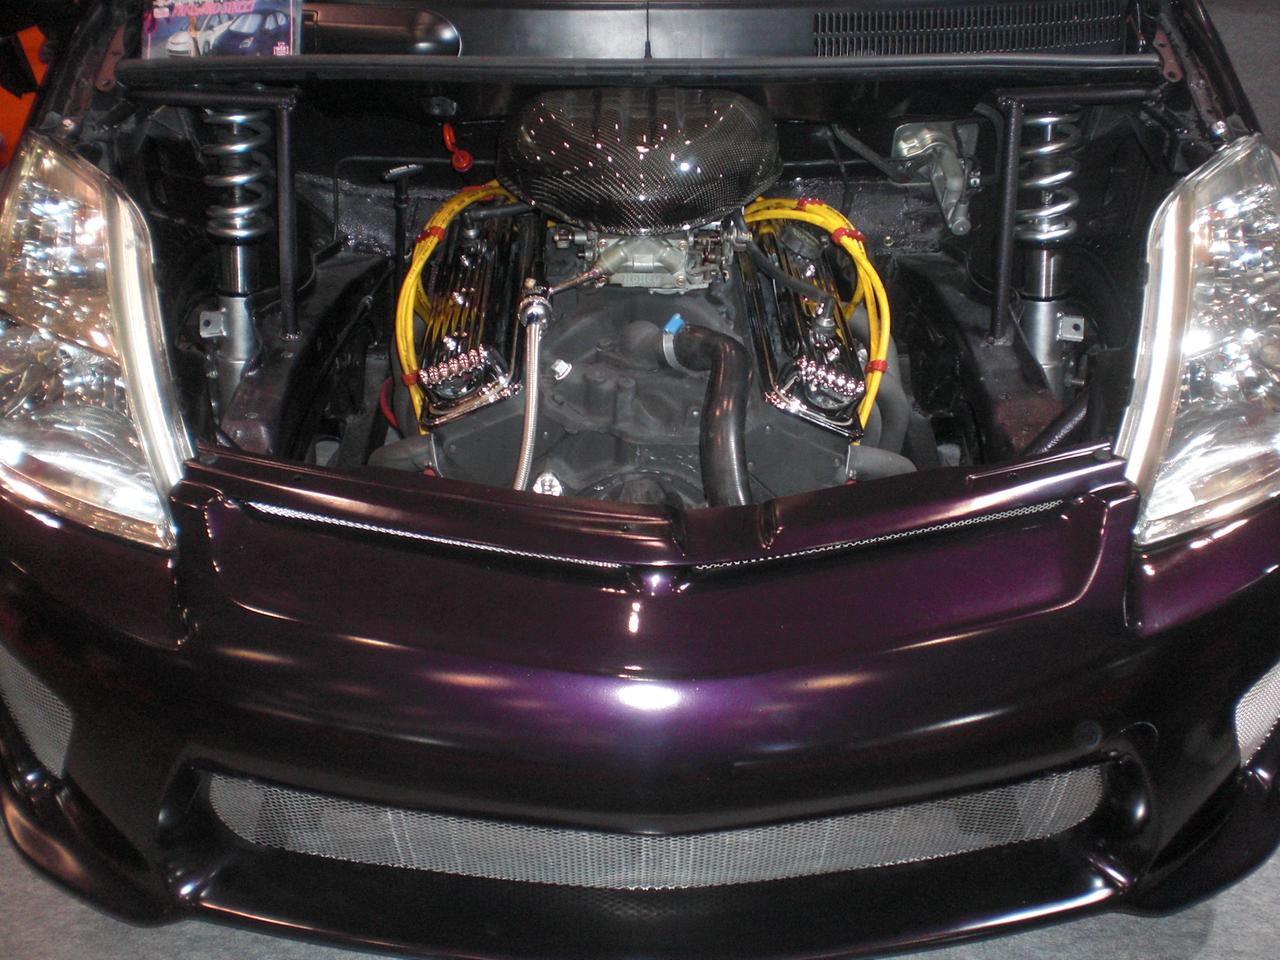 Under the hood of the Prius Pro Street from Wiz Custom Builder (Photo: Stephen Clemenger/Gizmag.com)